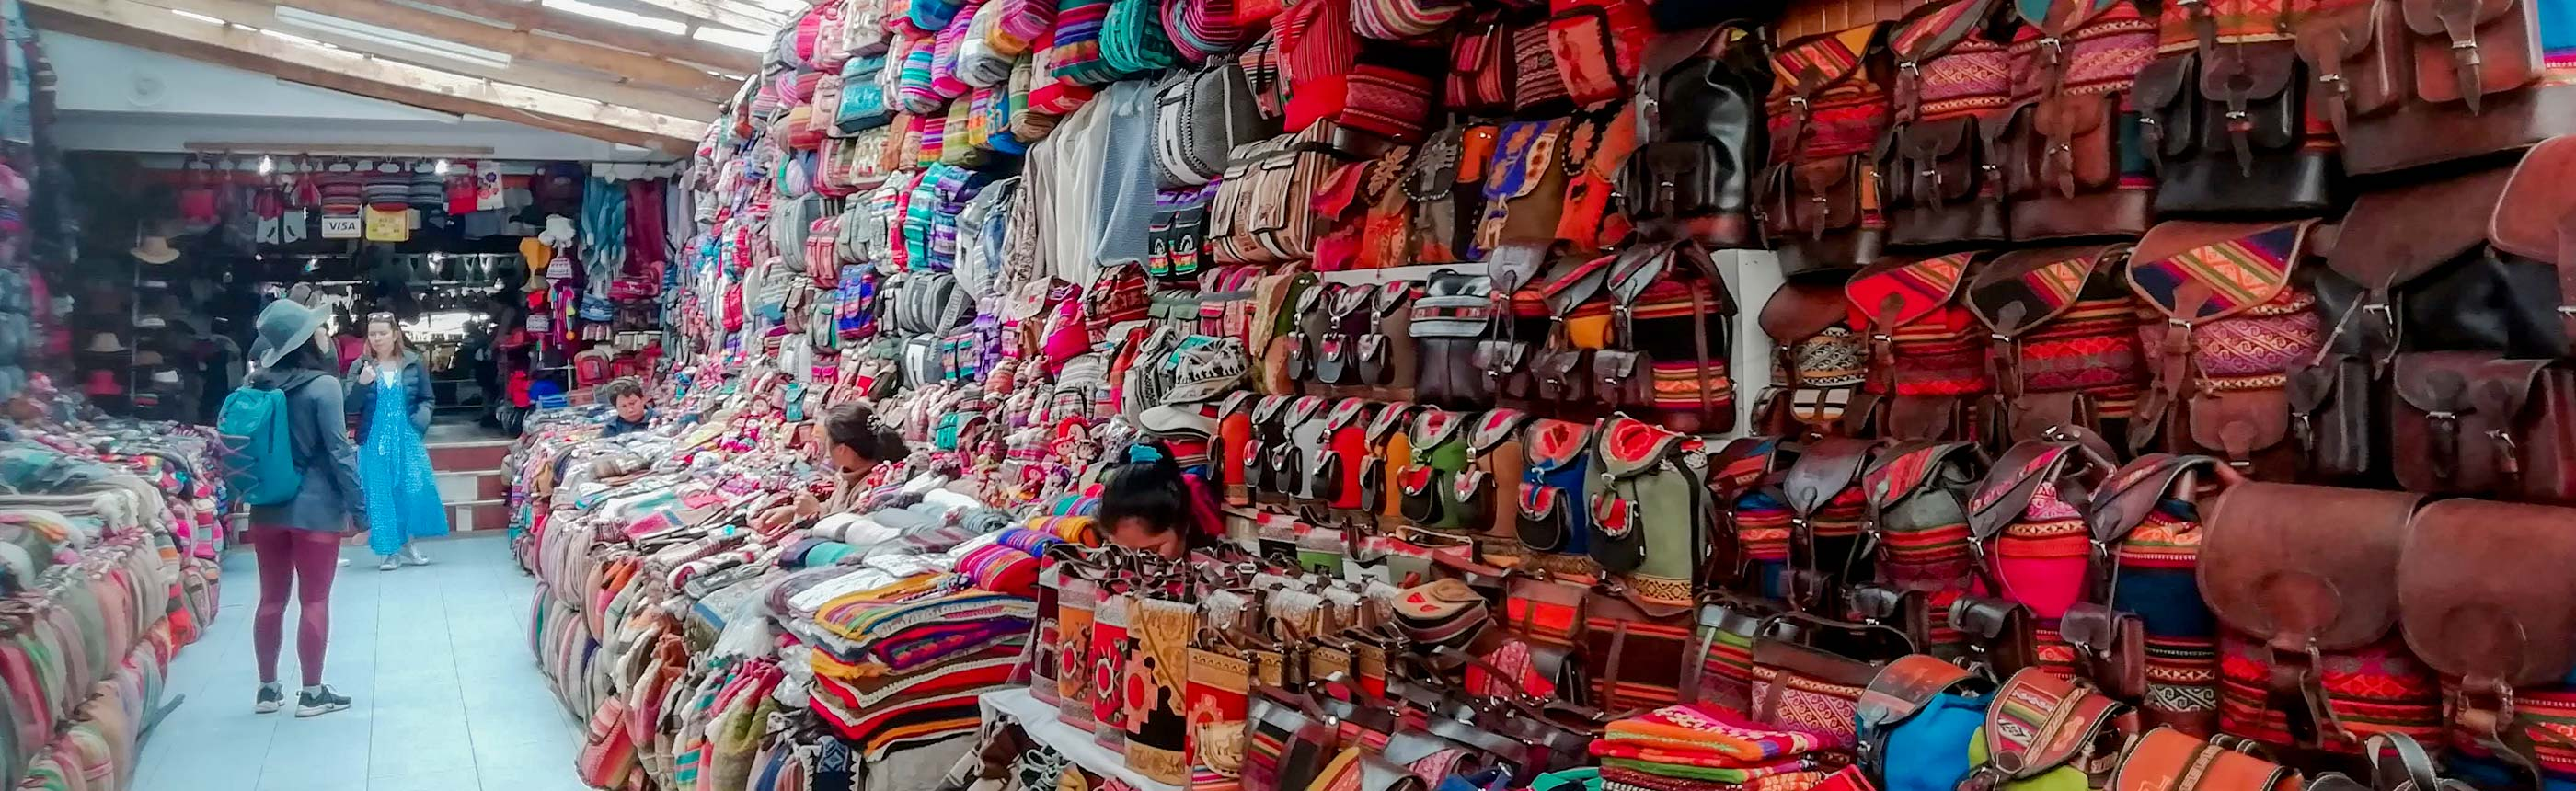 The artisan market at Pisac is now world famous and it is visited on the Sacred Valley tour